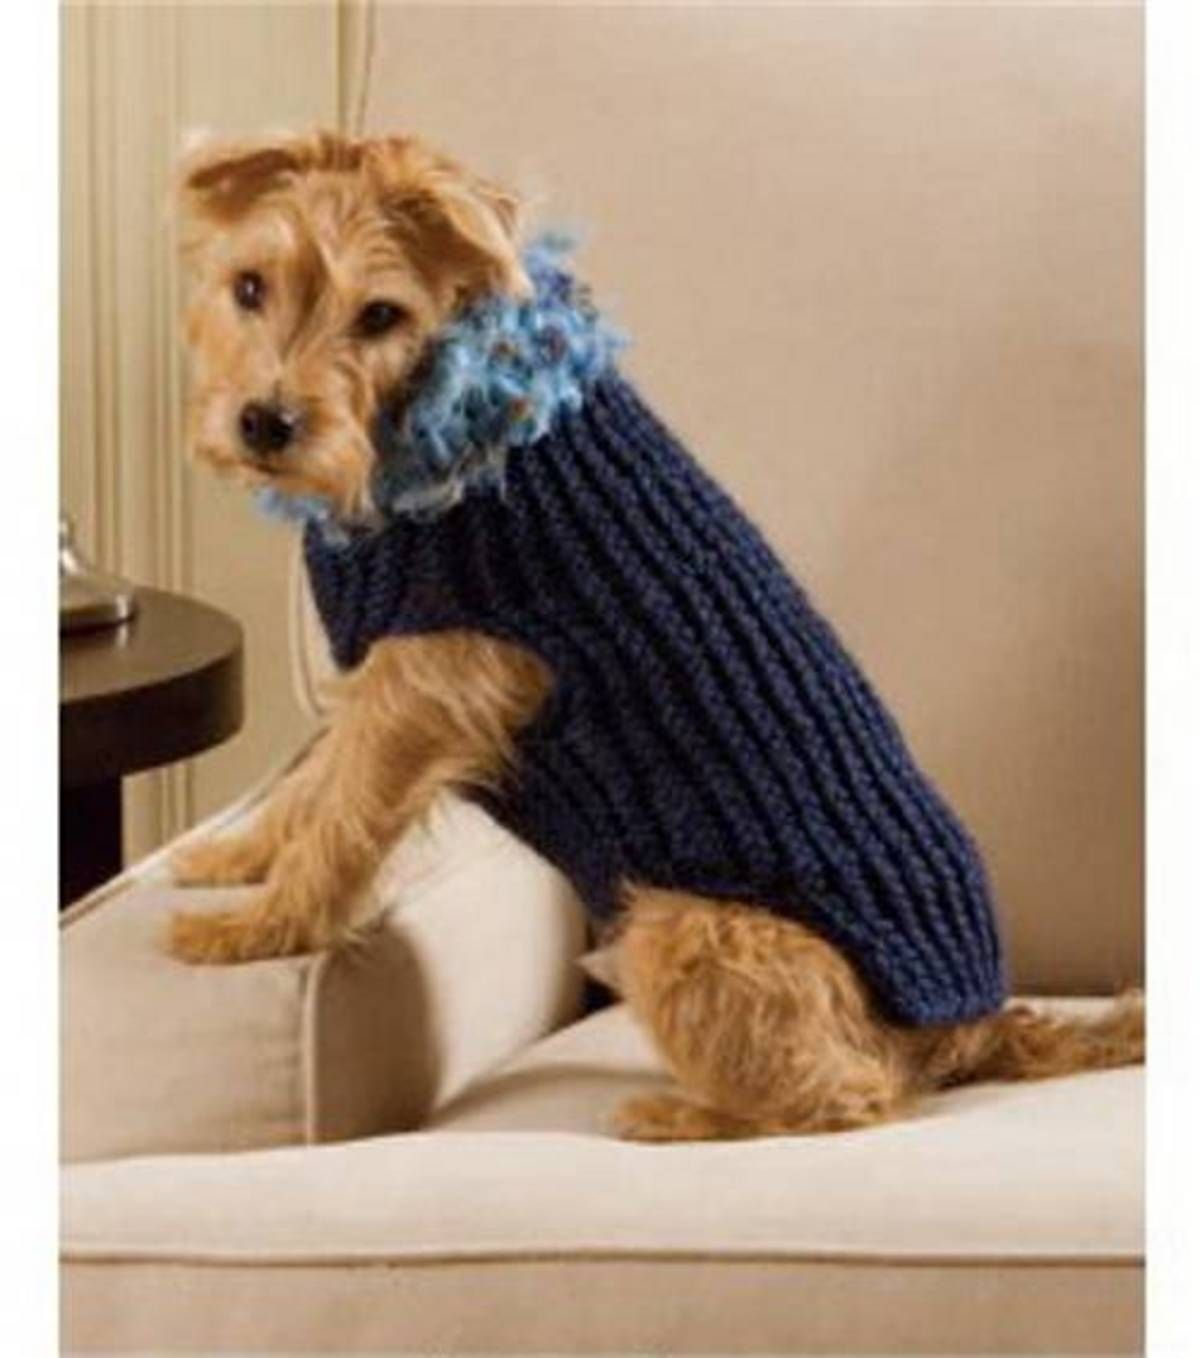 Easy-To-Loom Dog Sweater | Loom Knitting! | Pinterest | Stricken und ...